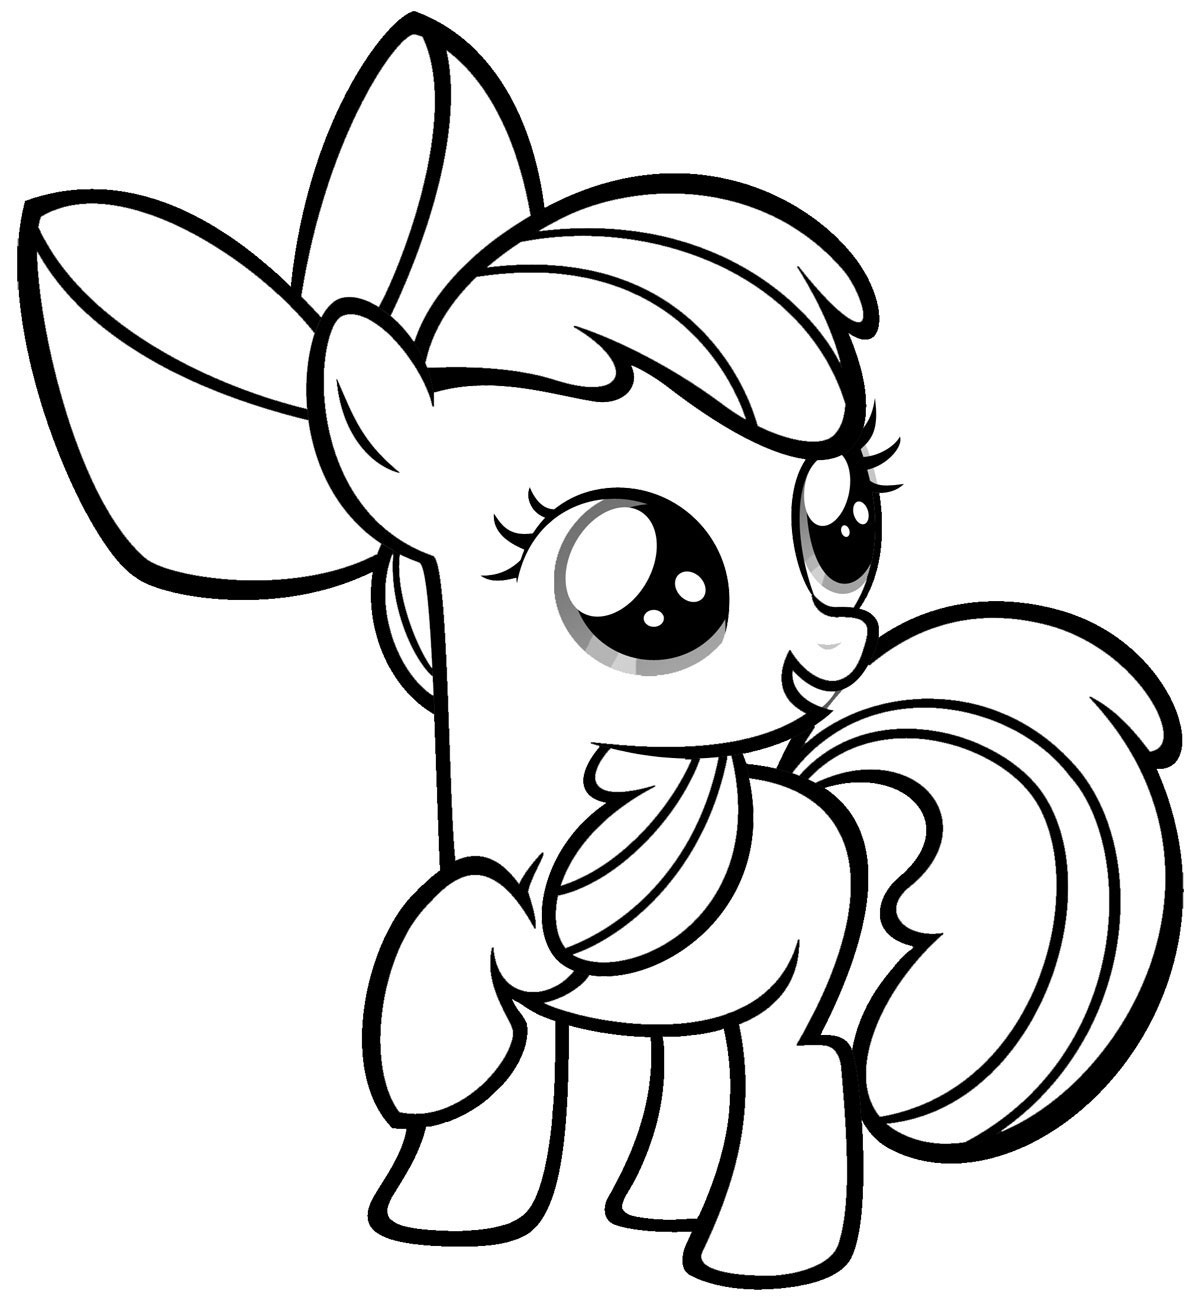 free printable my little pony coloring pages - my little pony coloring pages